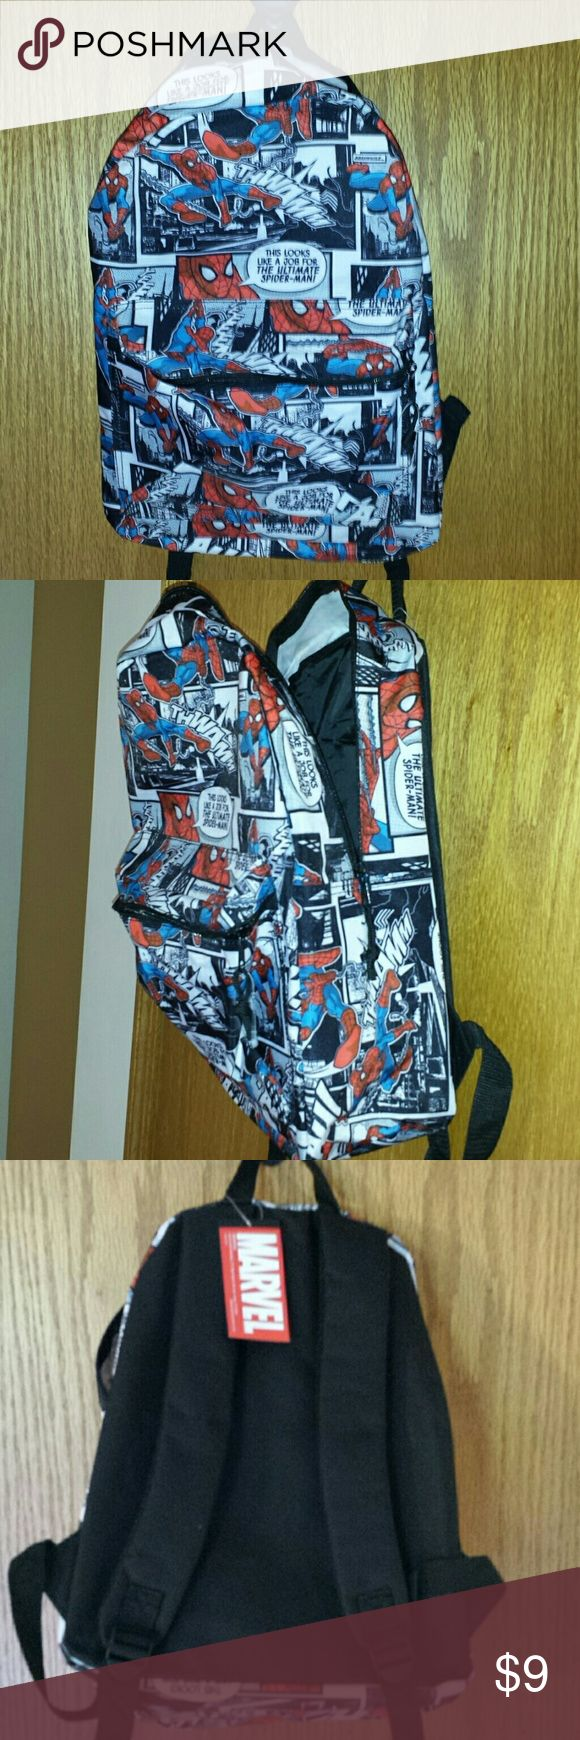 Spiderman backpack NWT Backpack with front pocket and adjustable straps in sturdy printed canvas. Bioworld Bags Backpacks